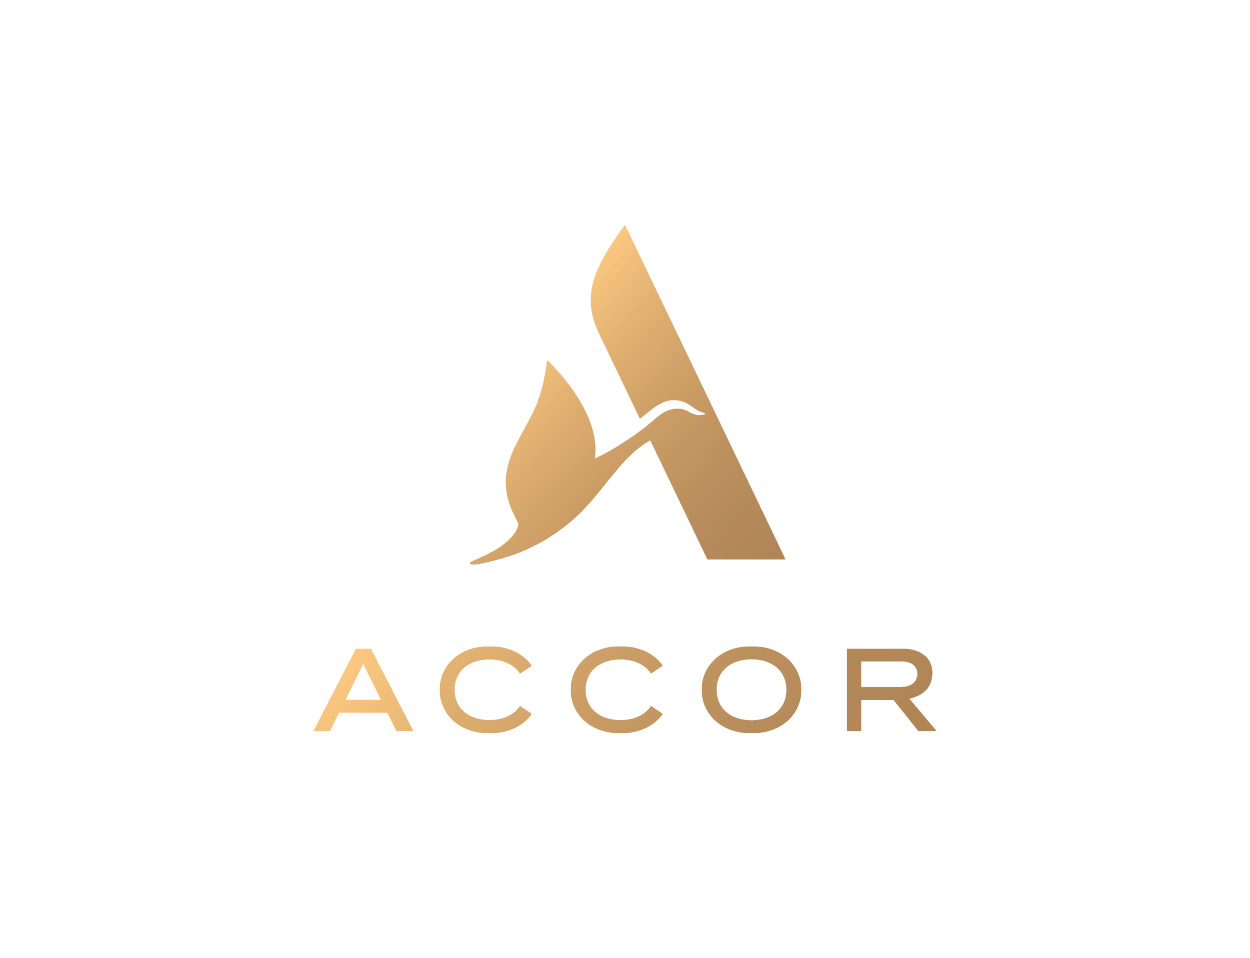 Referentie Accor